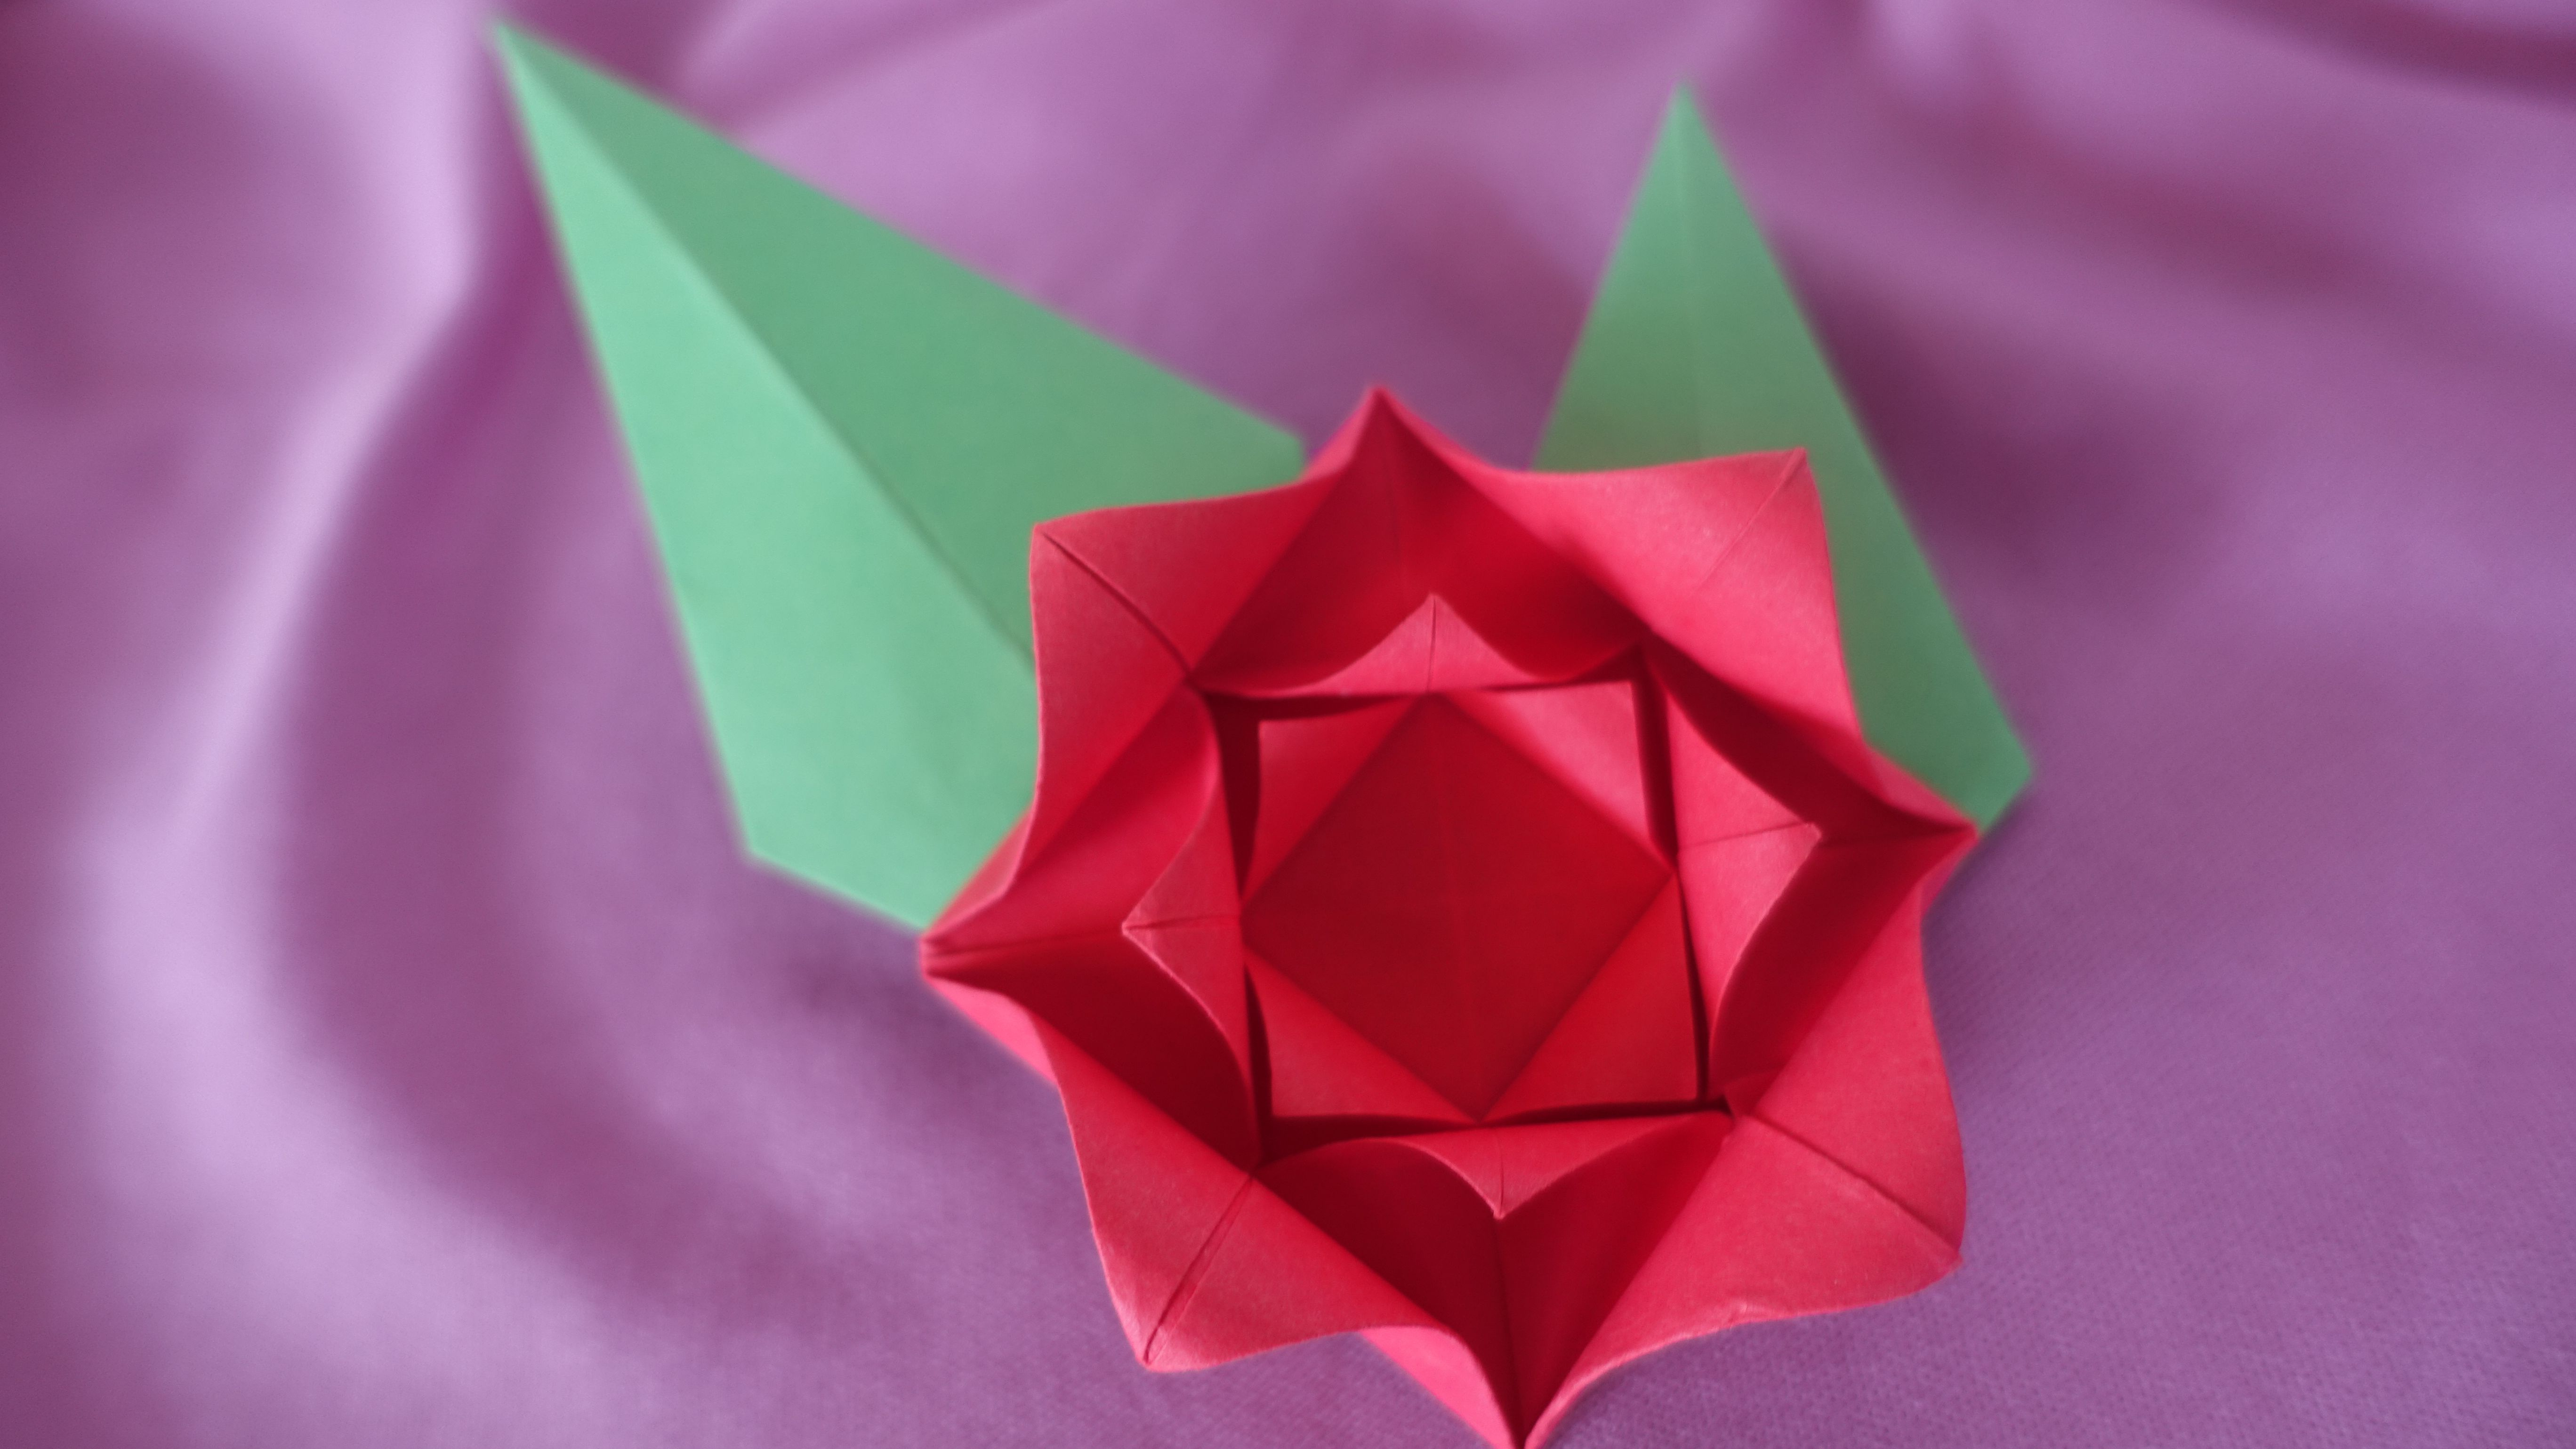 Origami Magic Rose Cube : 17 Steps (with Pictures) - Instructables | 3078x5472